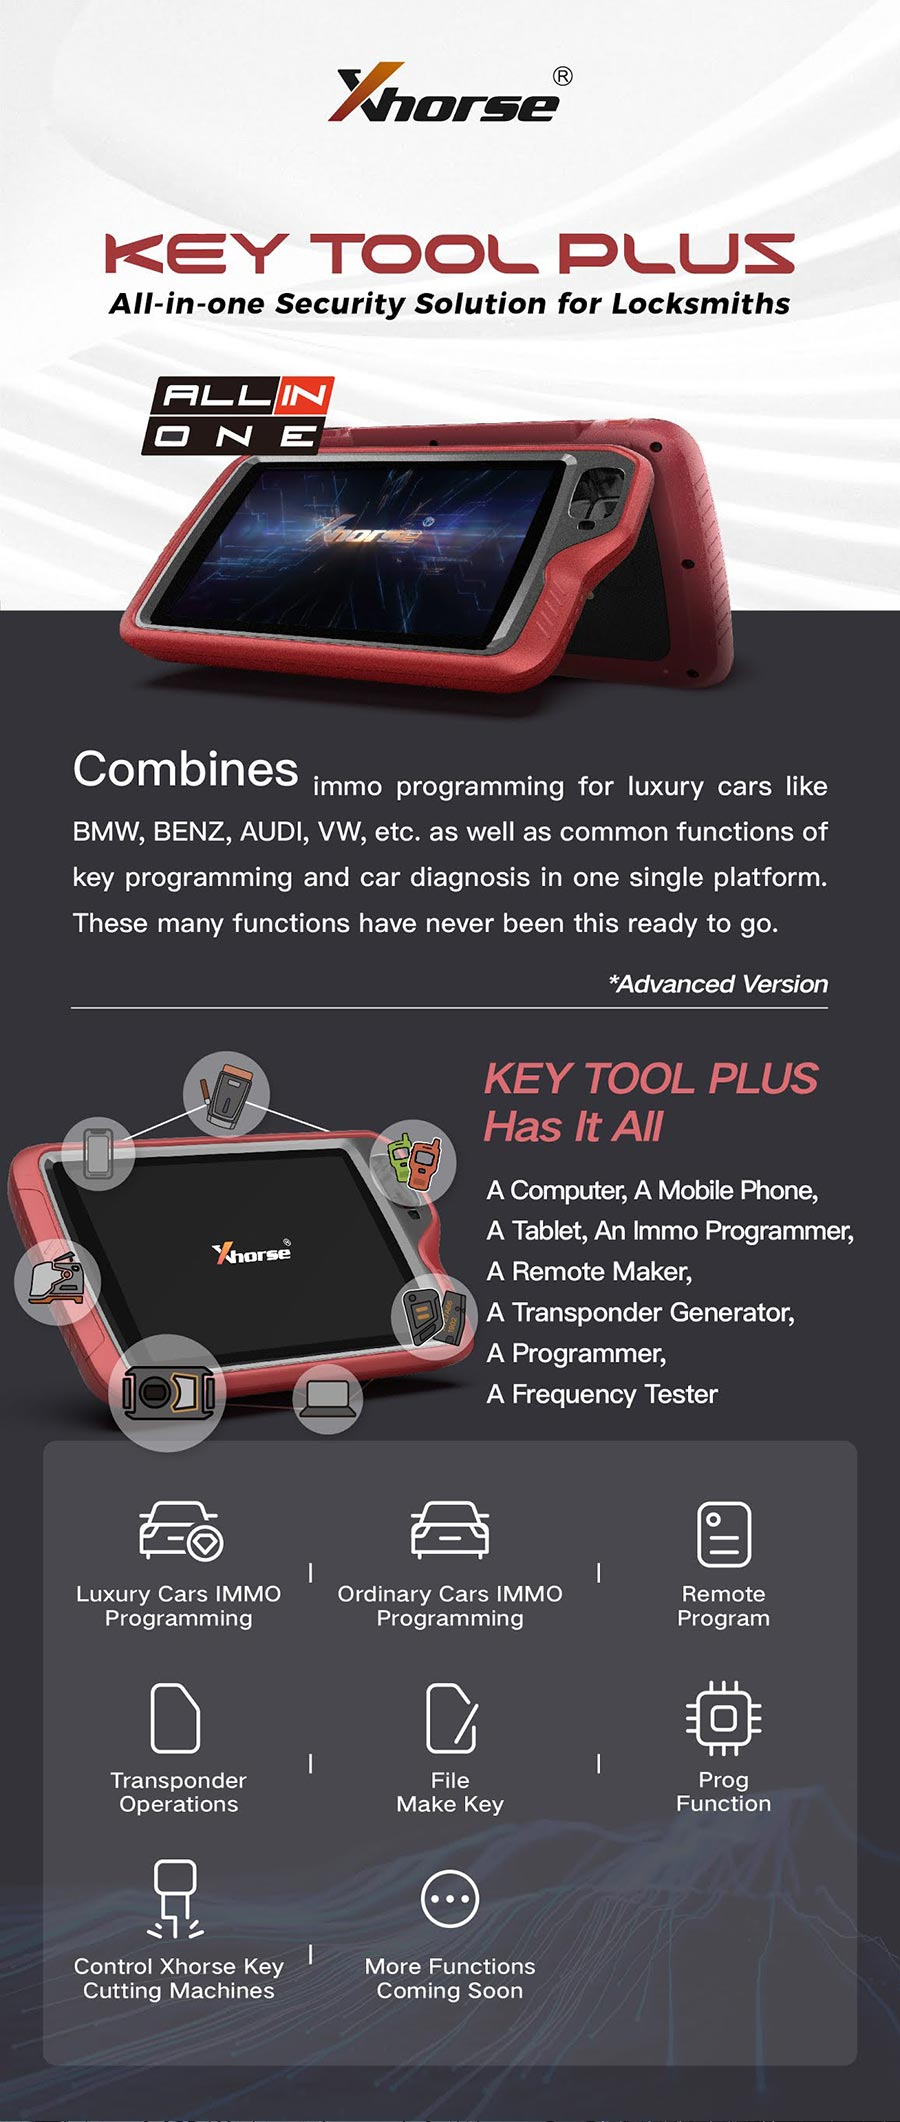 Xhorse VVDI Key Tool Plus Pad Device Full Configuration